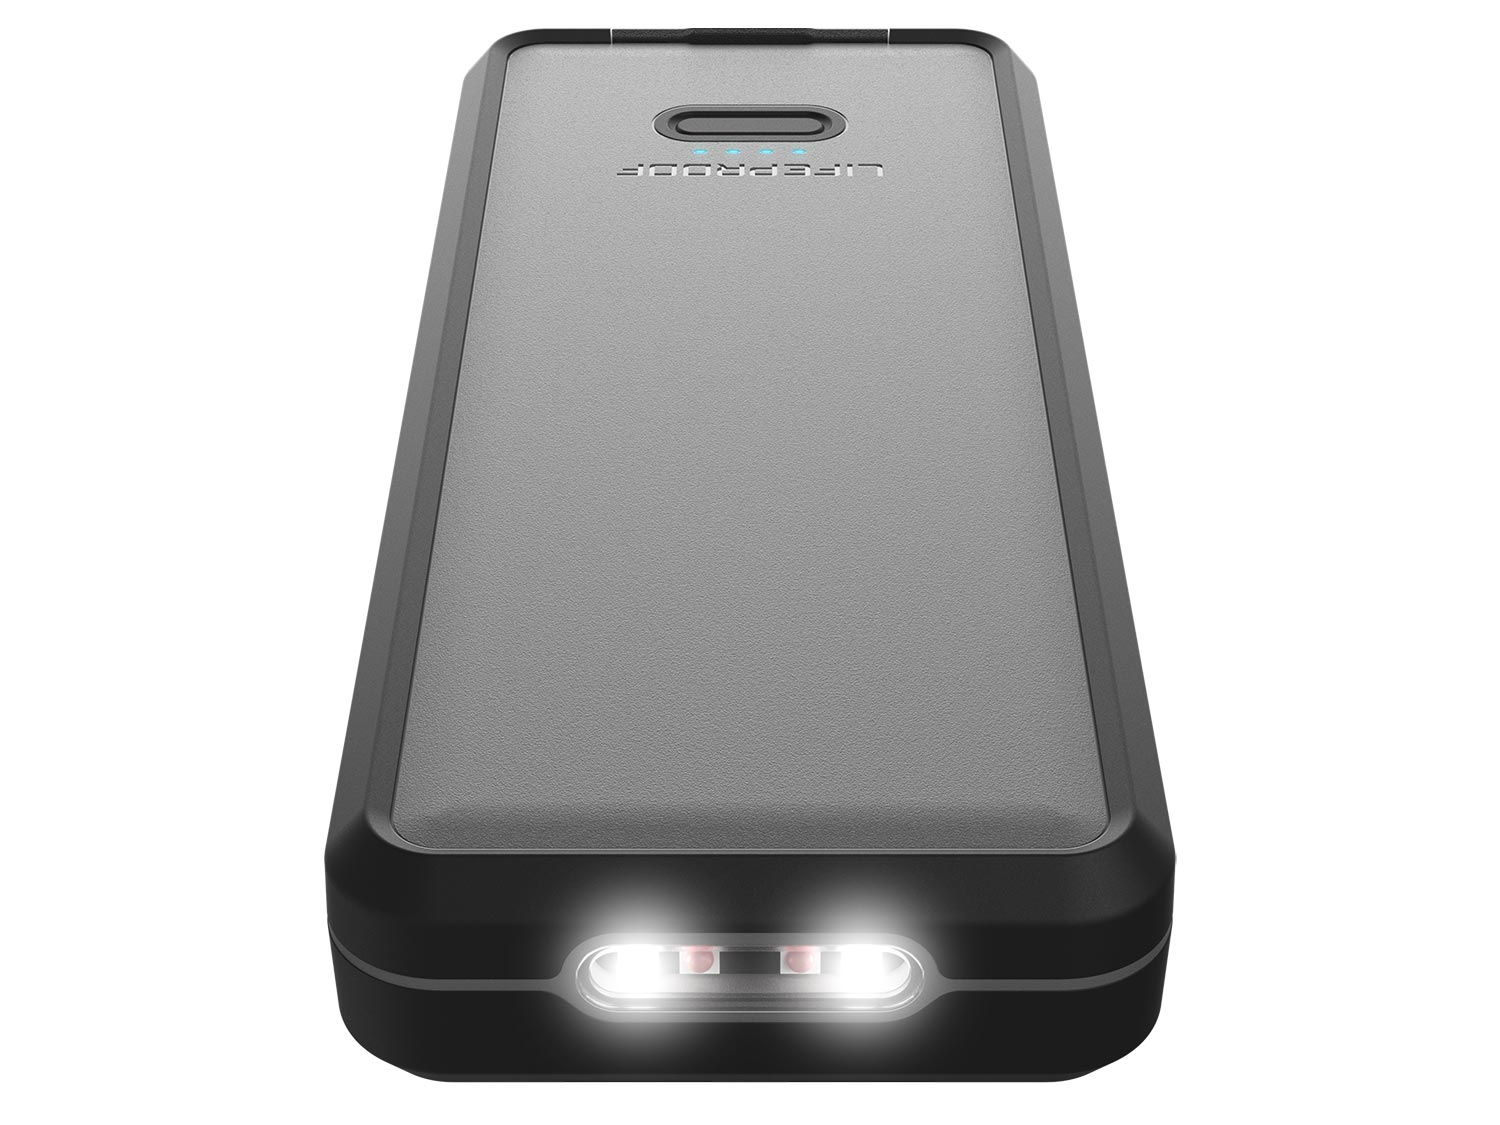 LifeProof Lifeactiv Power Pack 20